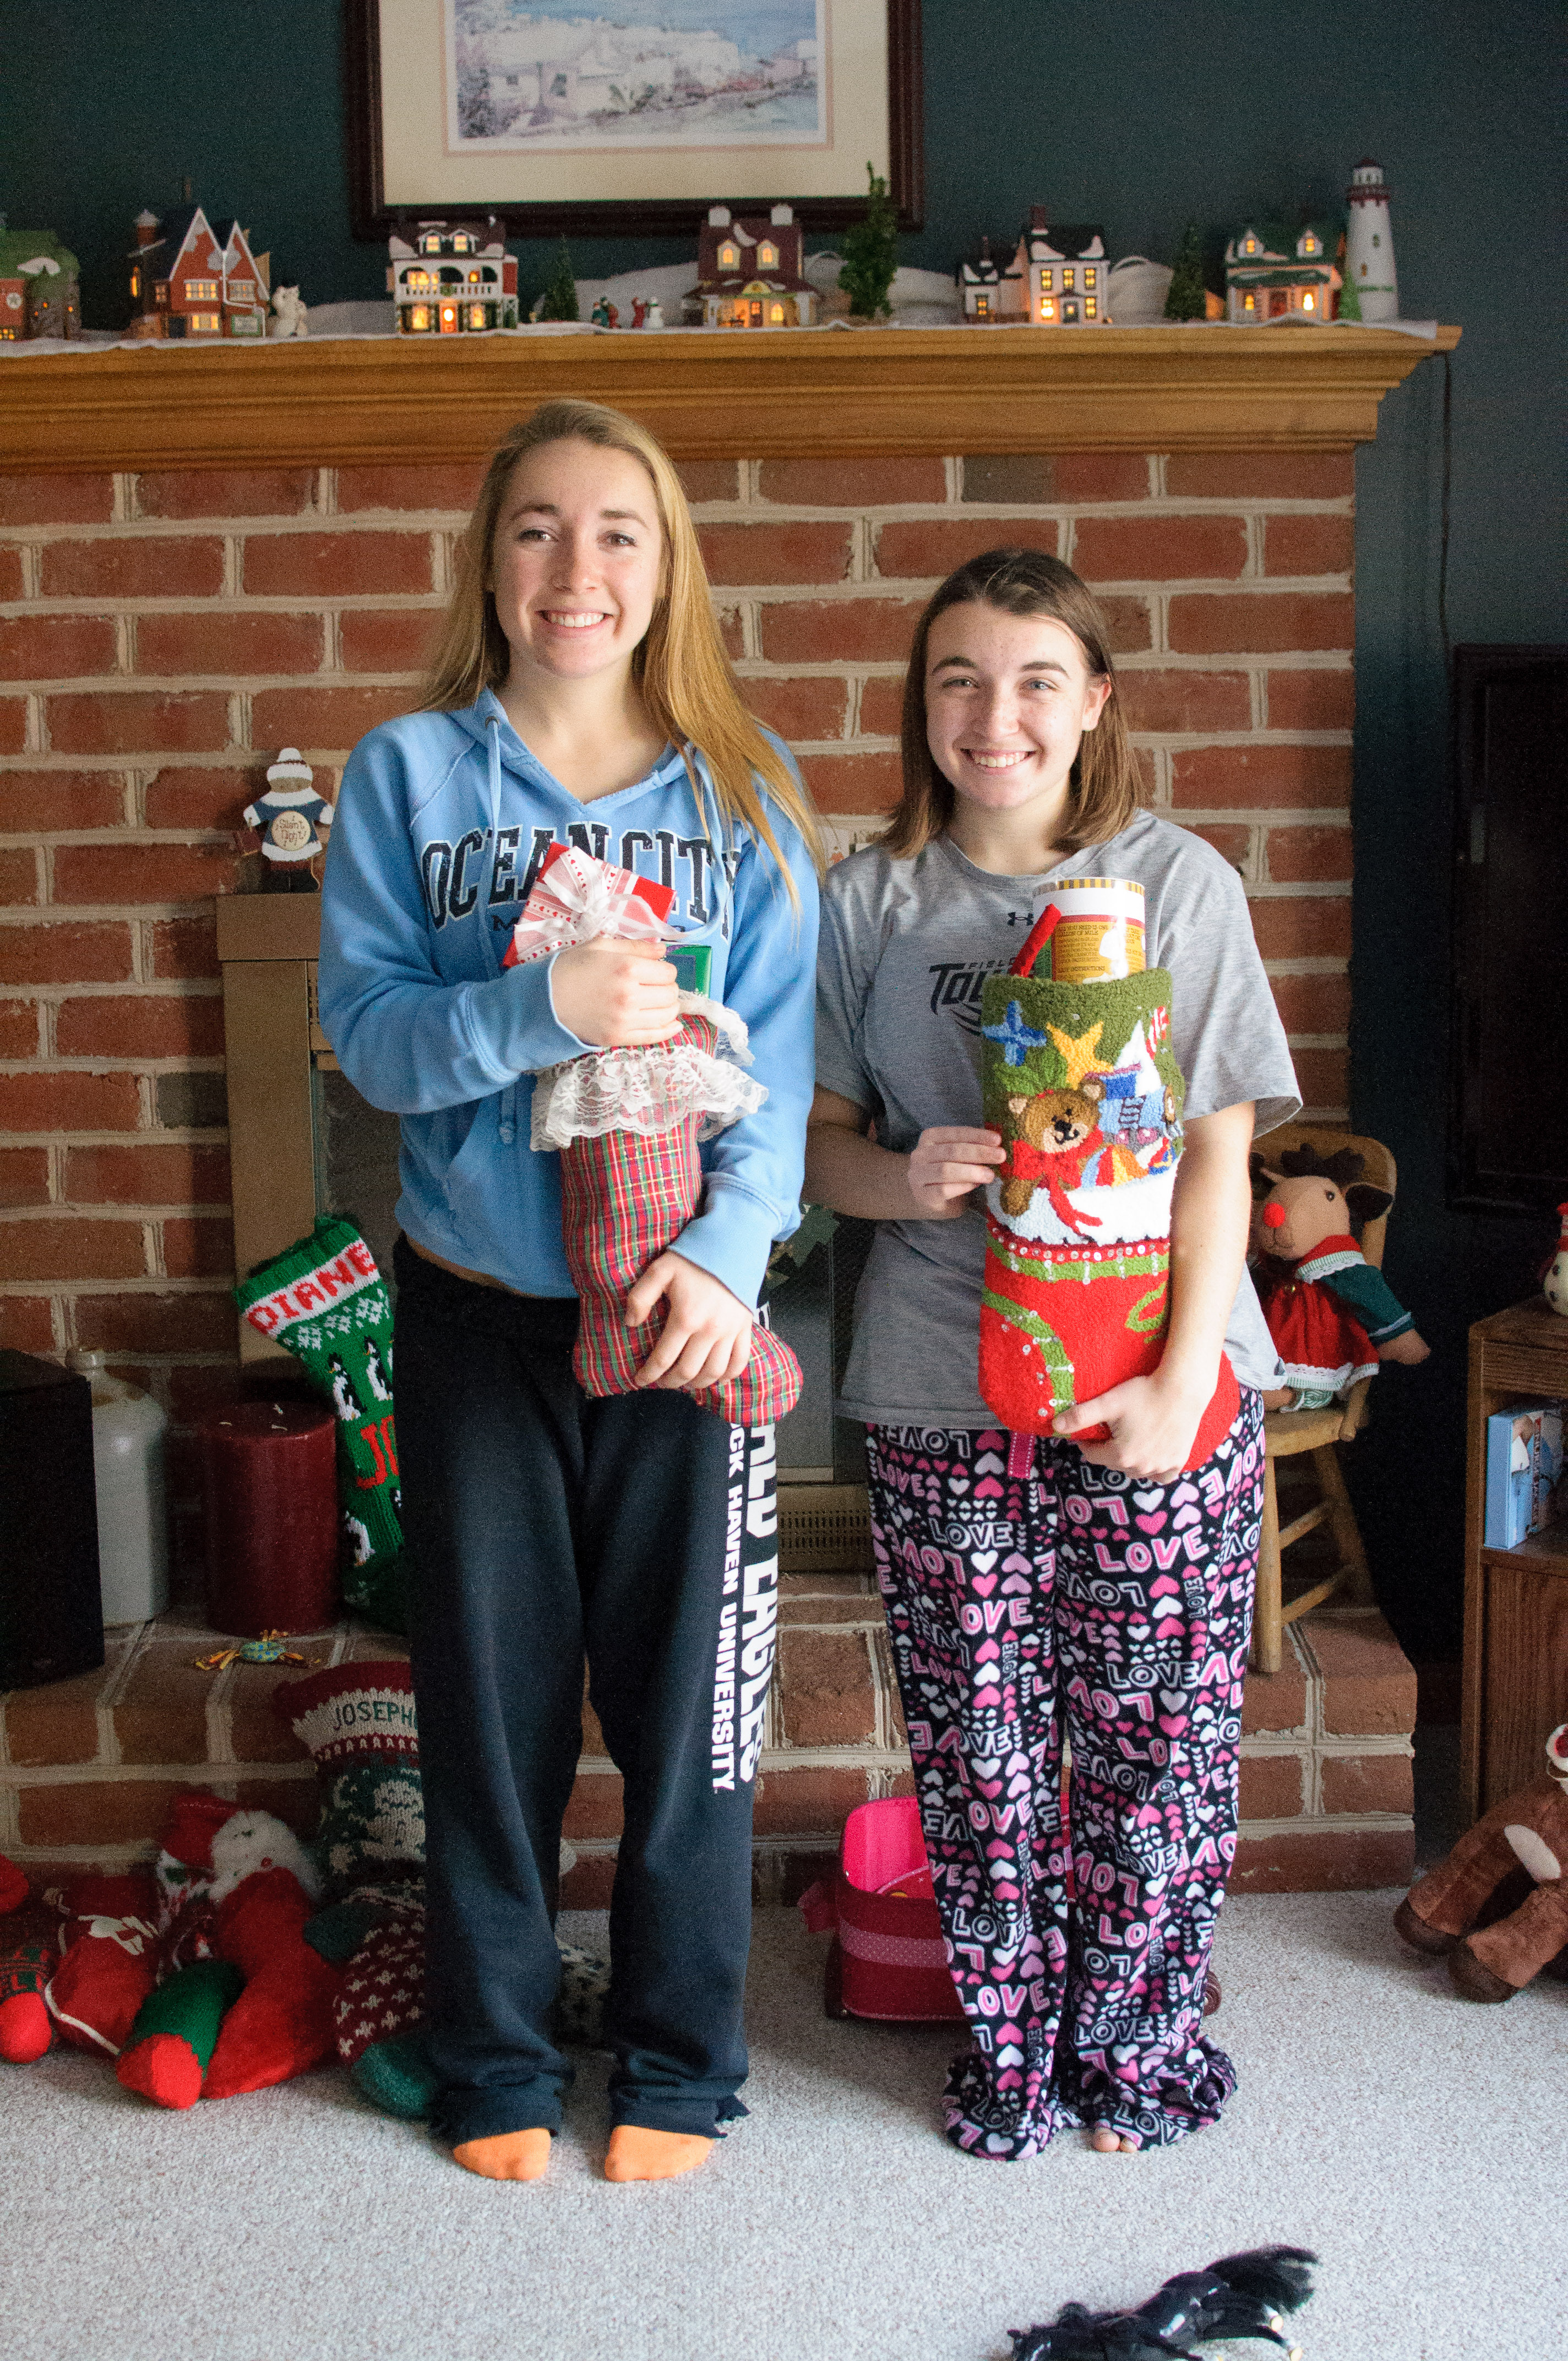 Abby and Ally holding their stockings